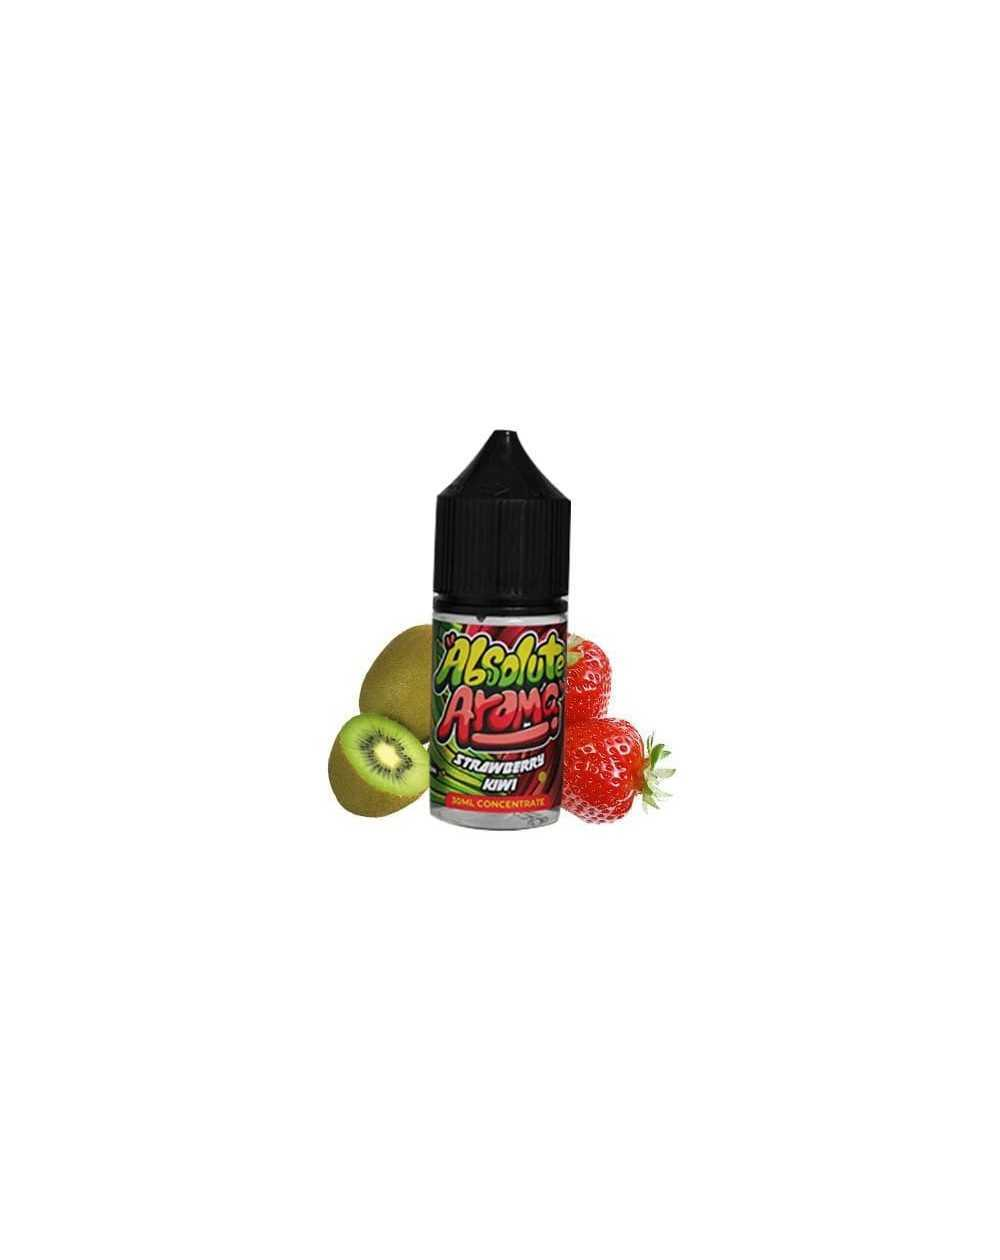 Concentrated aroma Strawberry Kiwi 30ml - Absolute Aroma by KXS Liquid-1